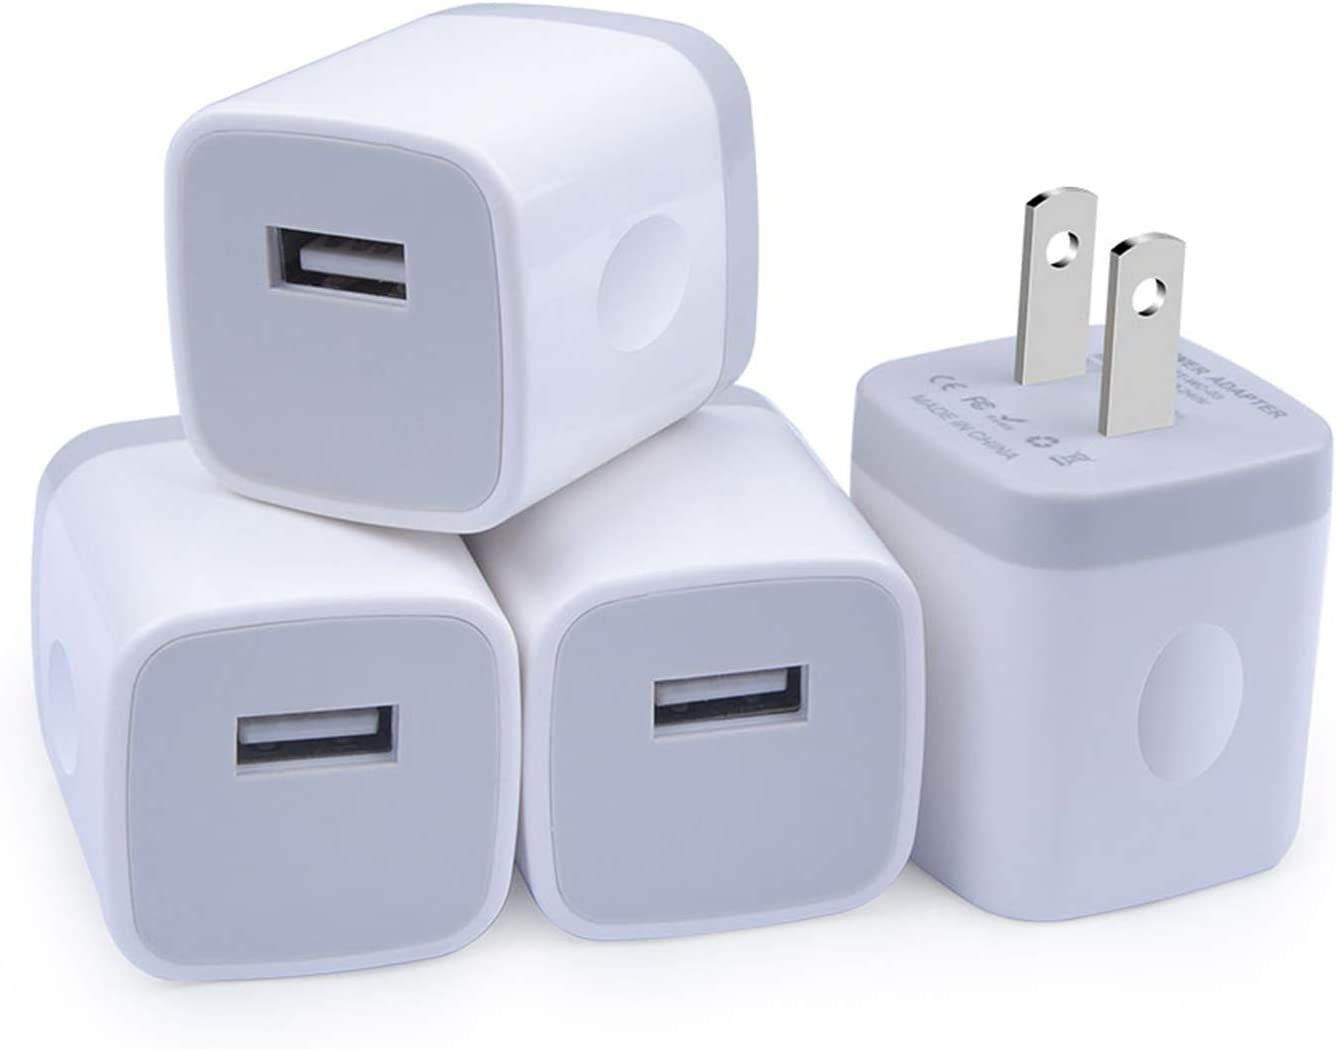 Charger Block, Charger Box, GiGreen 5V 1A USB Wall Charger 4 Pack Single Port USB Cube Plug Adapter Compatible iPhone 11/XS/X/8/7/6, Samsung S20+/S10/S9/S8/A20/A70/A80/A10e/Note 10, LG G8, Pixel, Moto